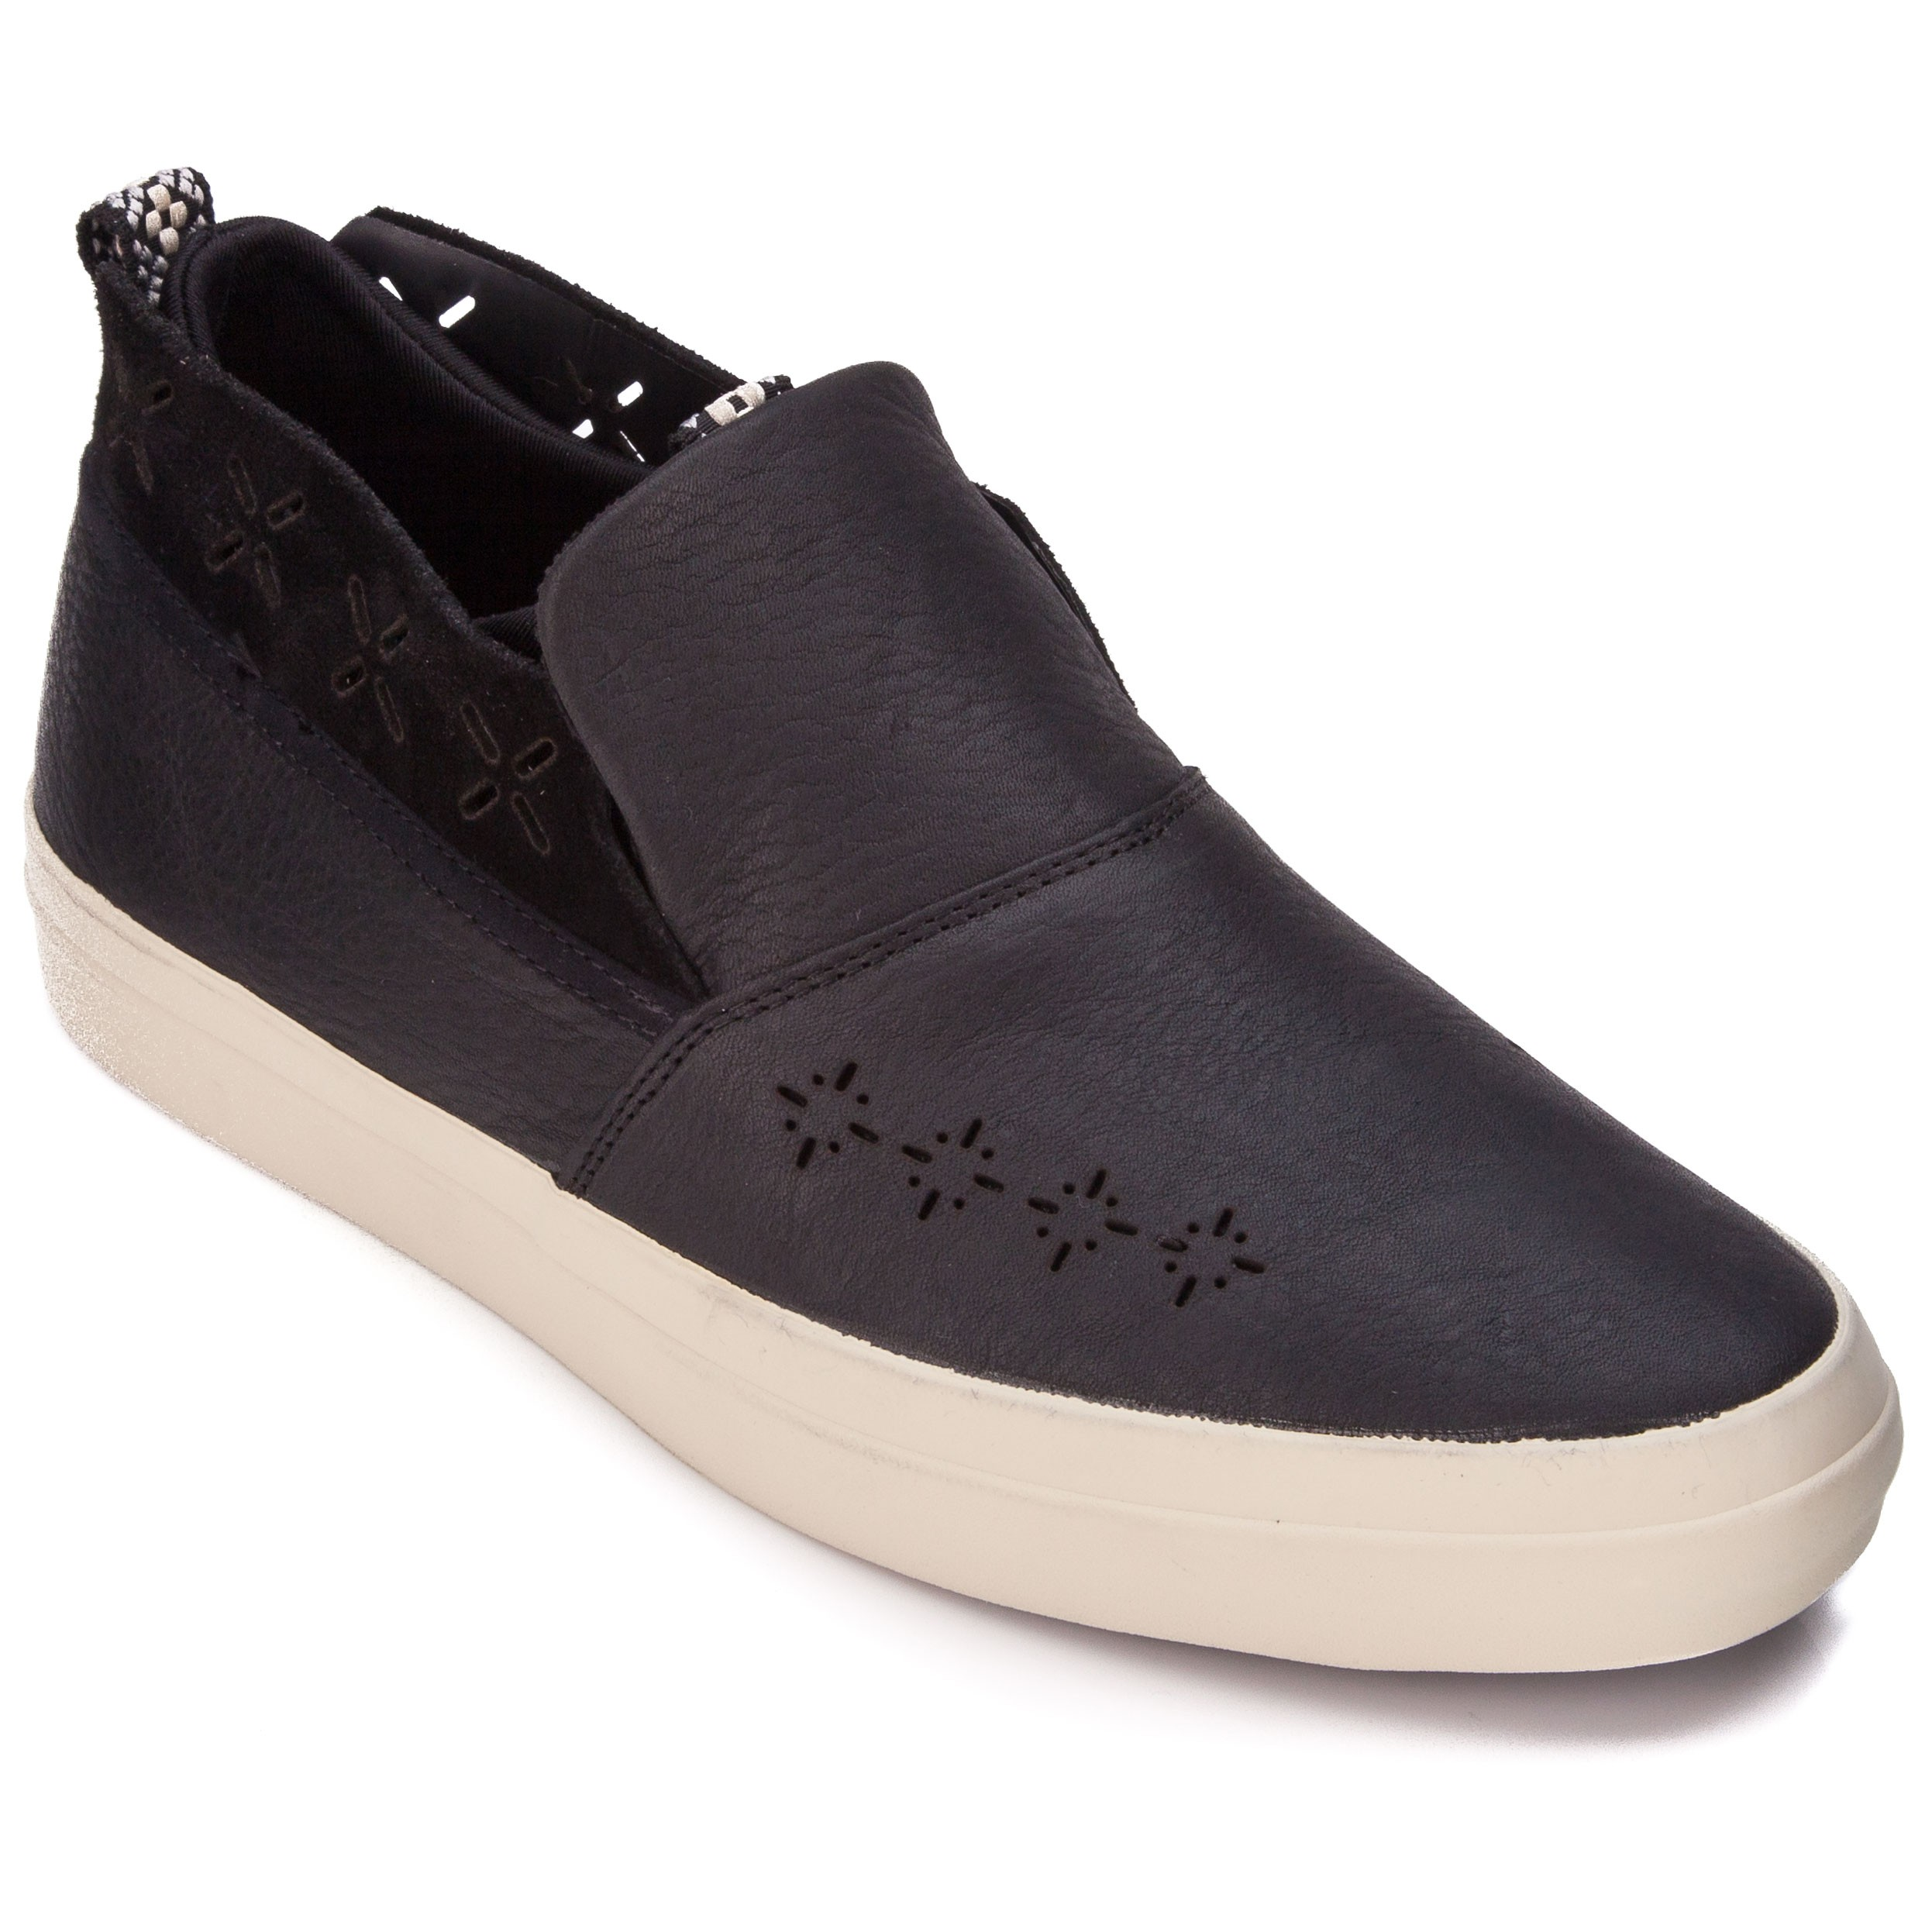 shoe shoes diamond suede black products boarders barca